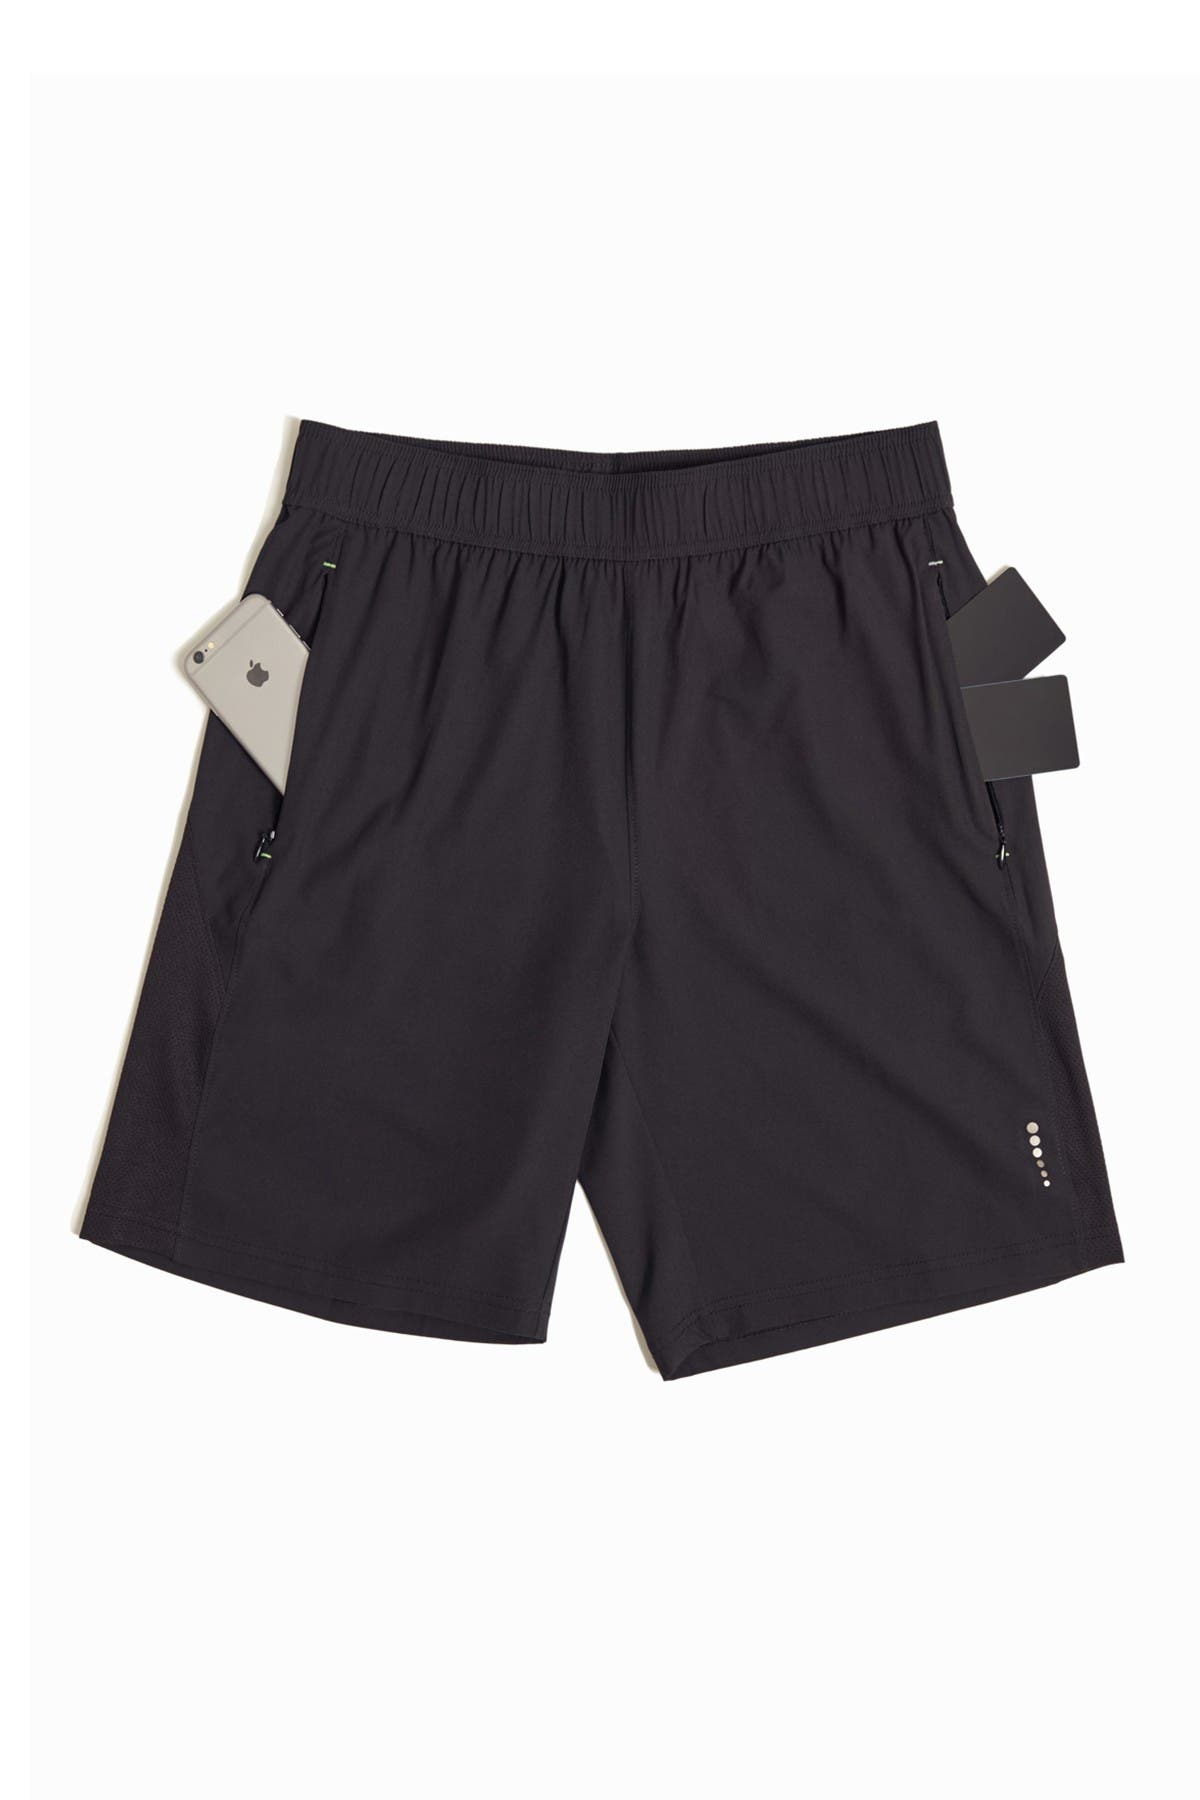 Image of The Balance Collection Damien Interlock Woven Shorts